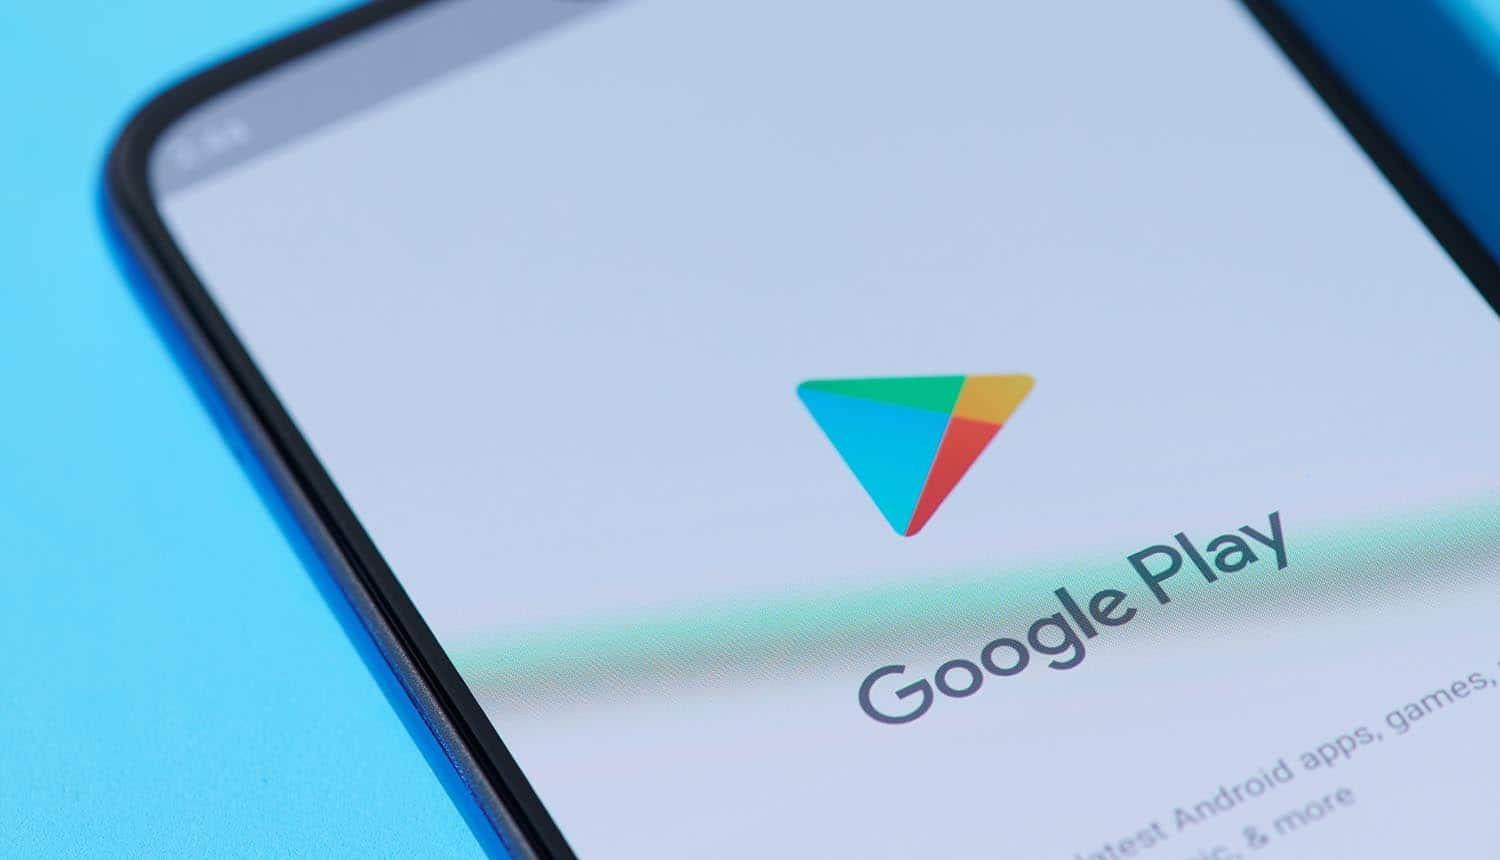 Google Play Store on smartphone screen showing ban on stalkerware apps for user tracking